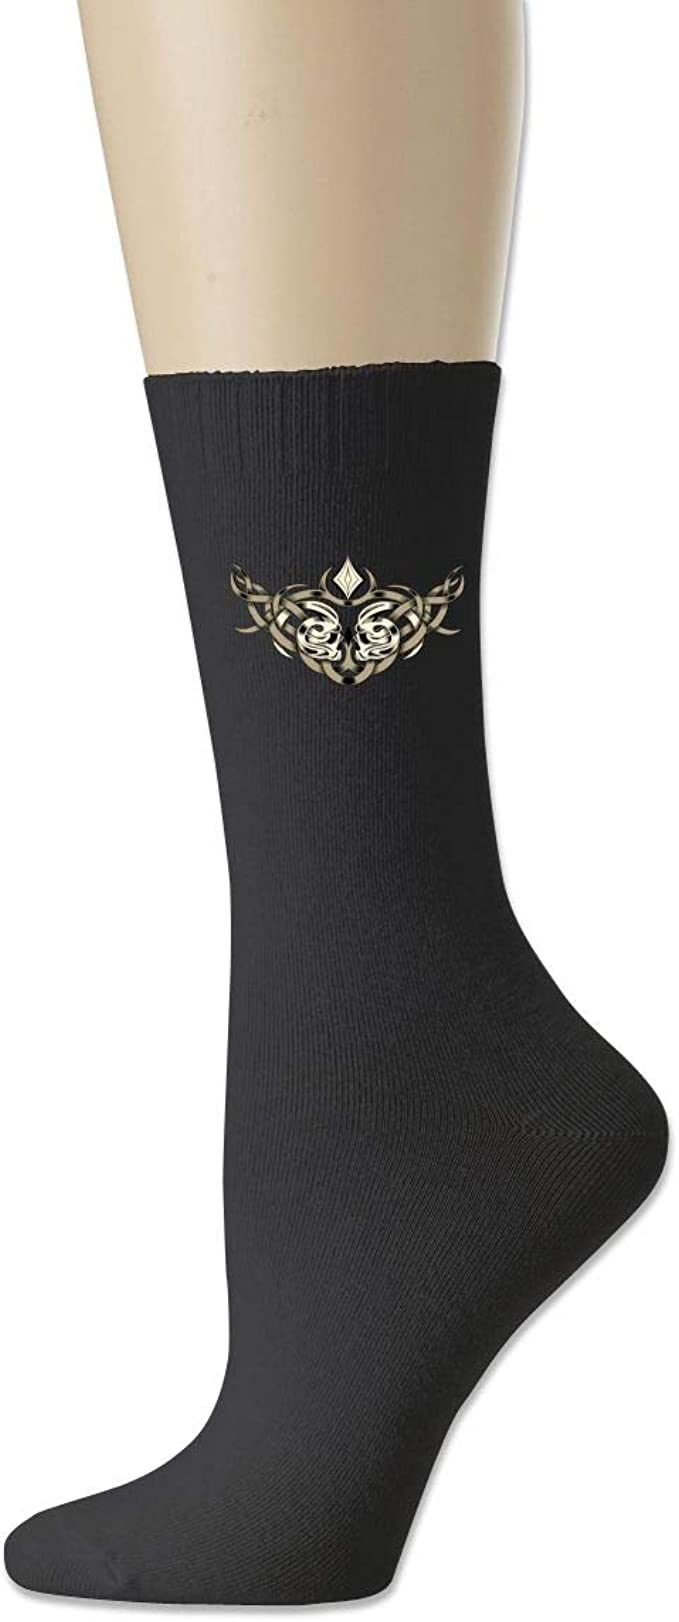 Men High Ankle Cotton Crew Socks Labor Day Design Pattern Casual Sport Stocking